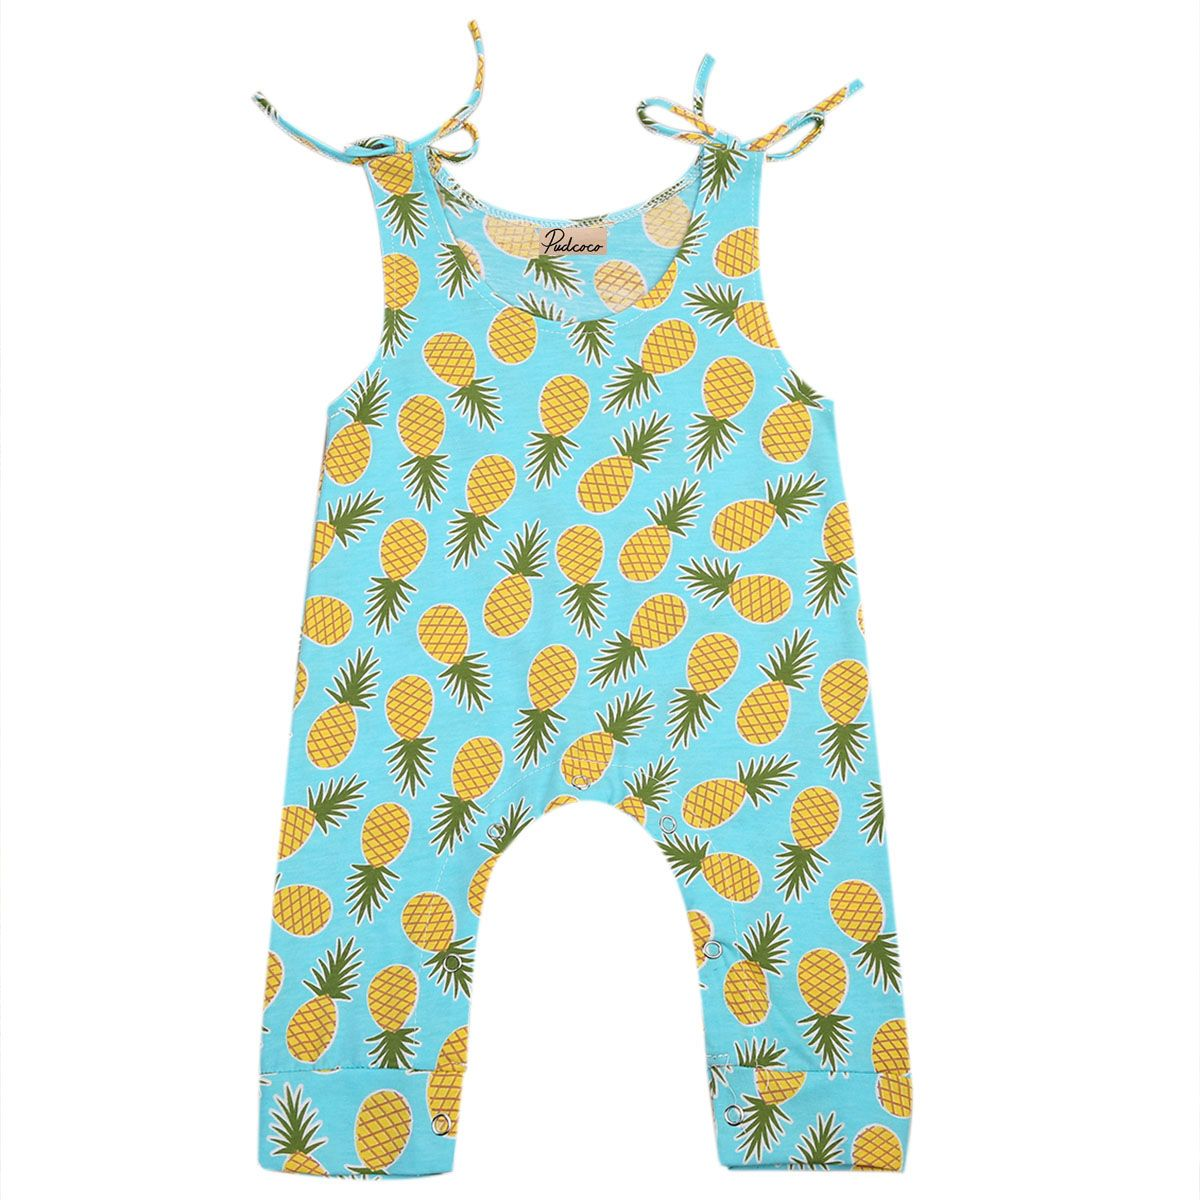 Newborn Baby Kids Boys Girls Romper Outfit Sleeveless Pineapple Print Jumpsuit Summer Clothes